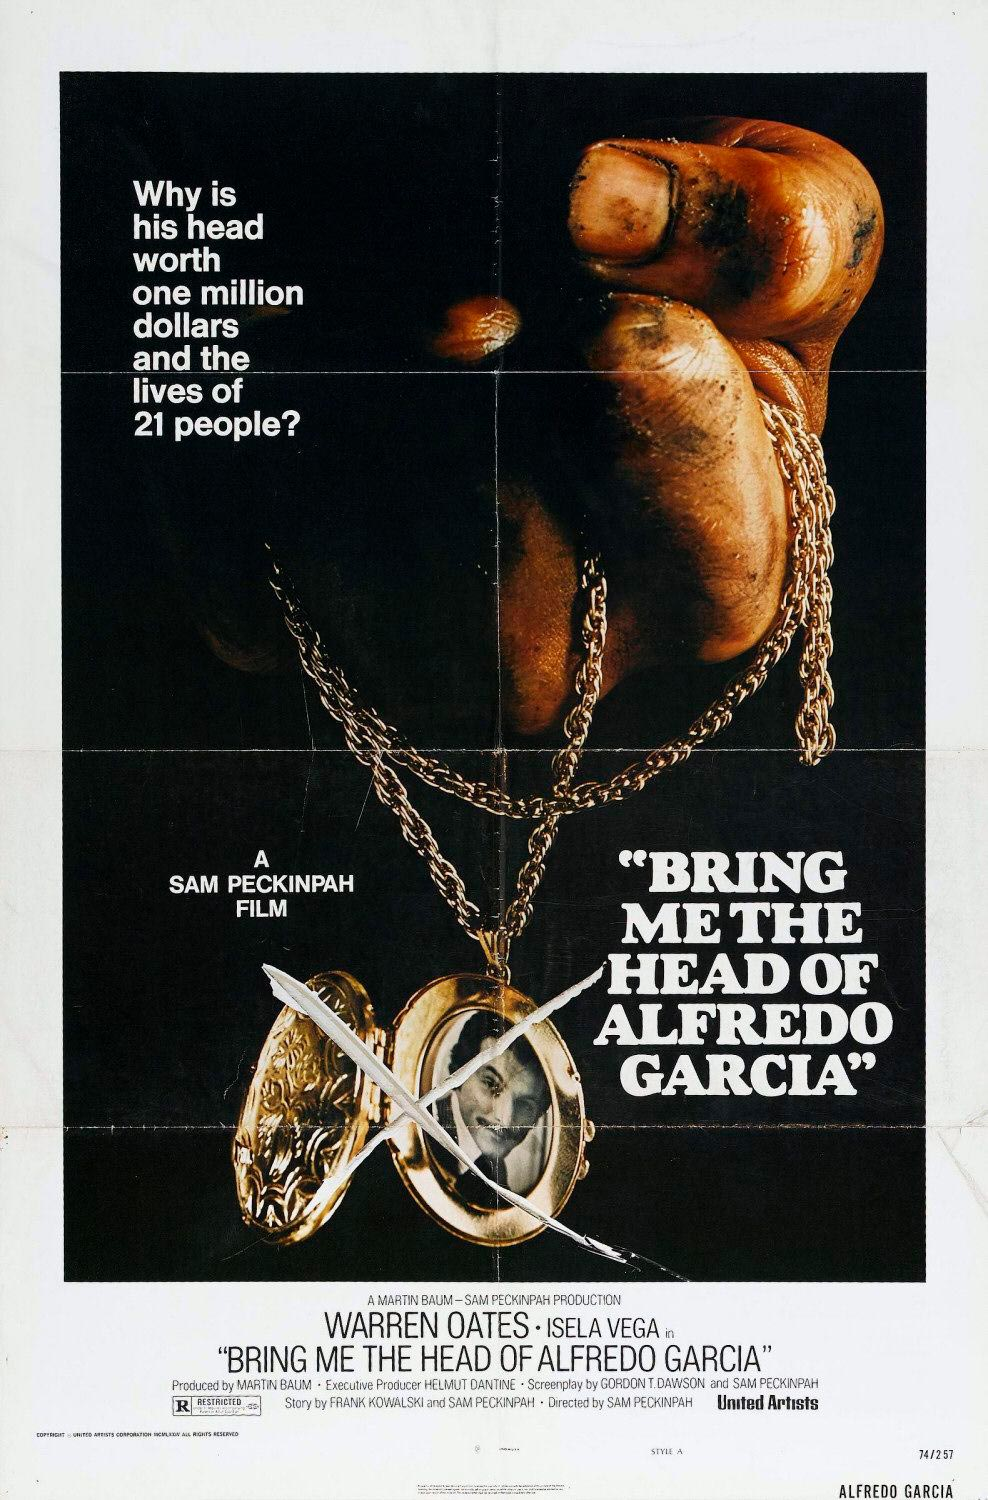 Quiero la cabeza de Alfredo García. Sam Peckinpah. Warren Oates. Bring me the head of Alfredo Garcia